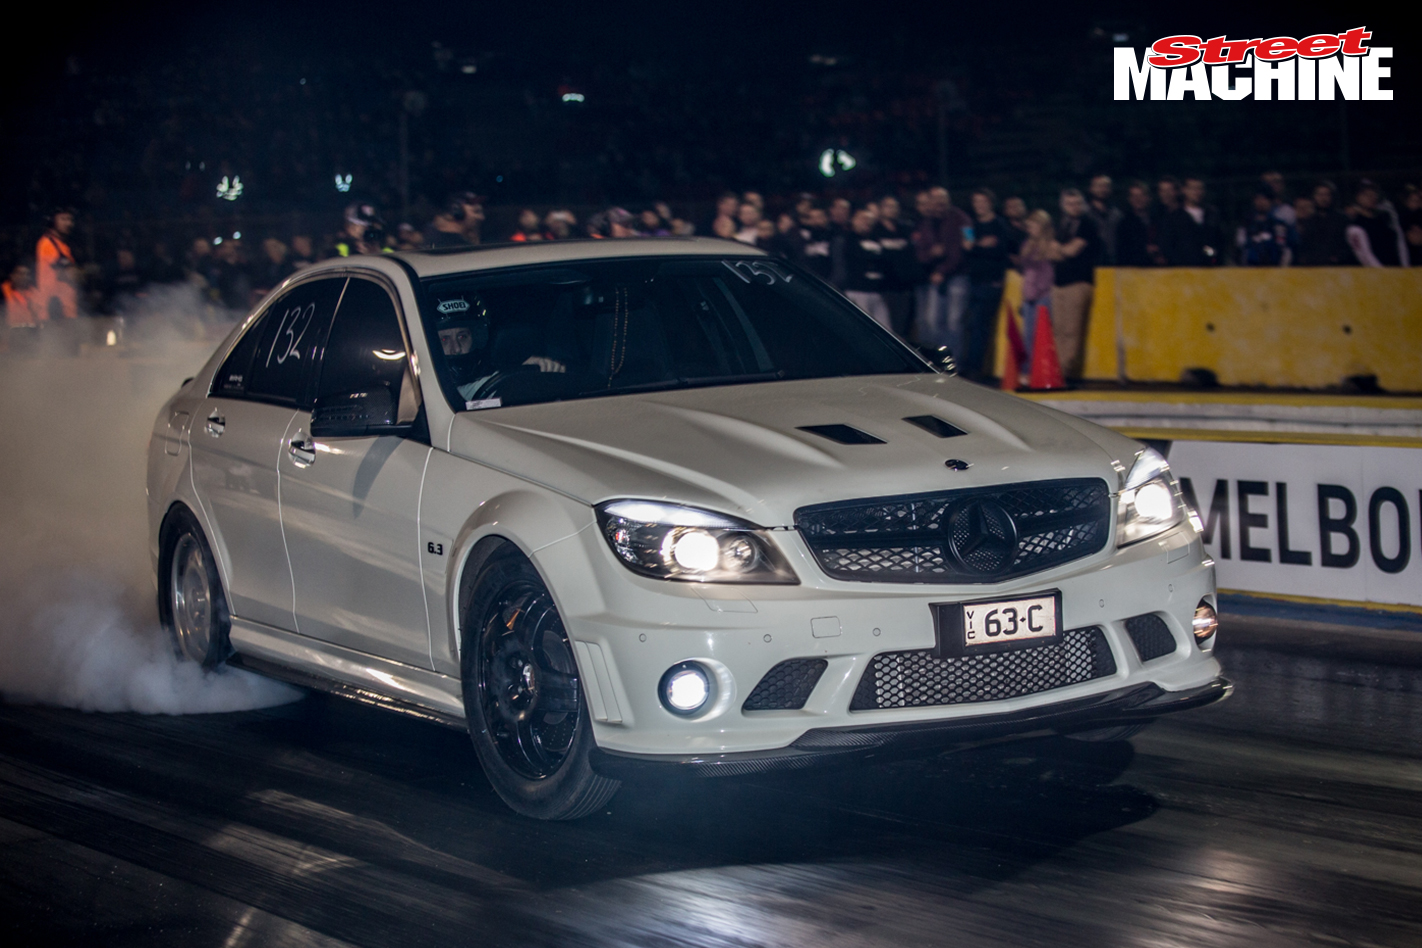 Mercedes C63 AMG Supercharged